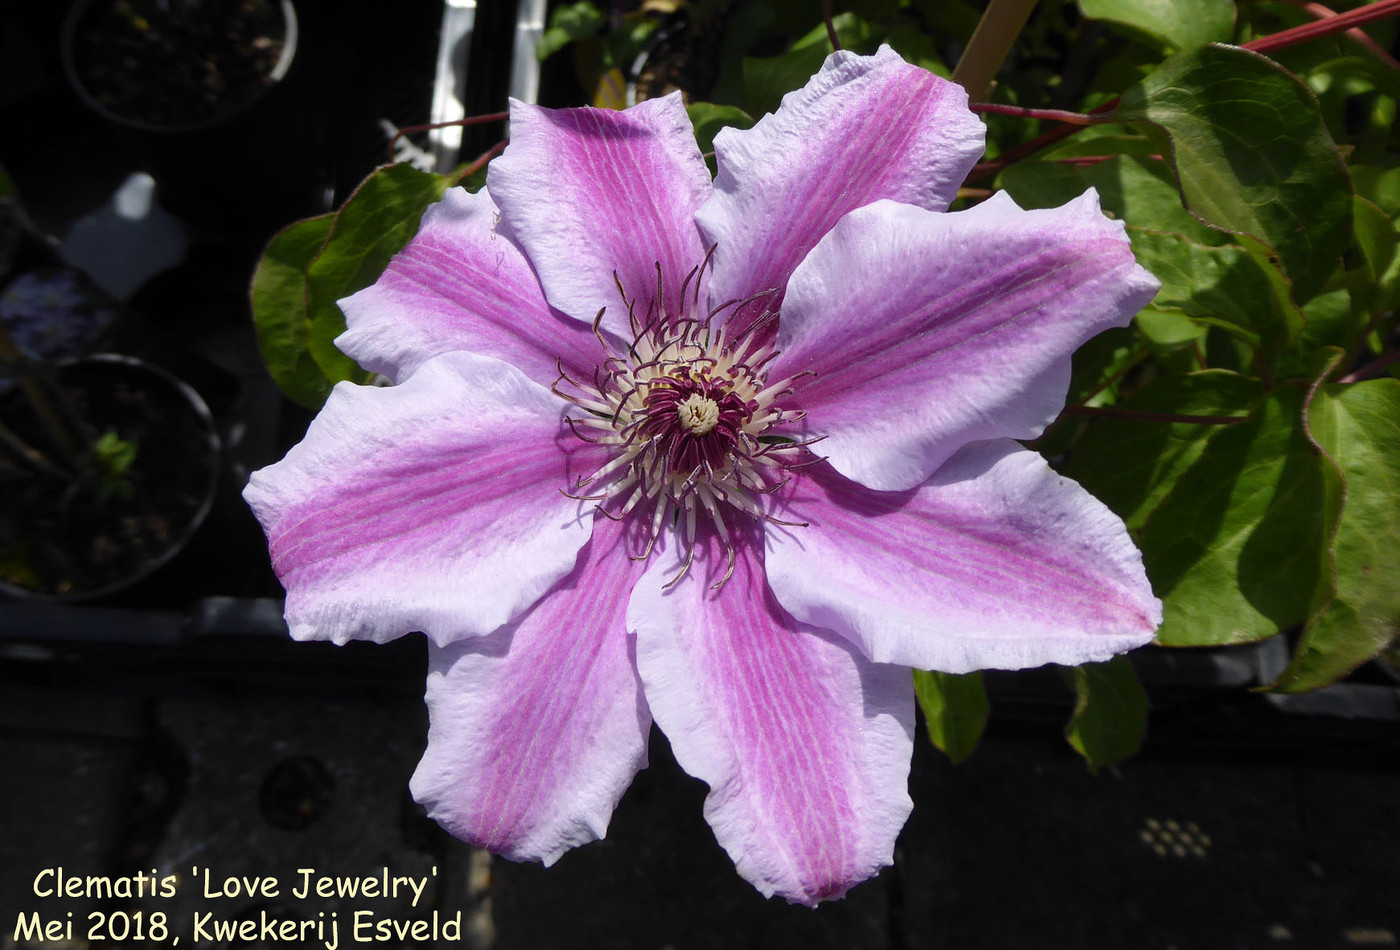 Clematis 'Love Jewelry'